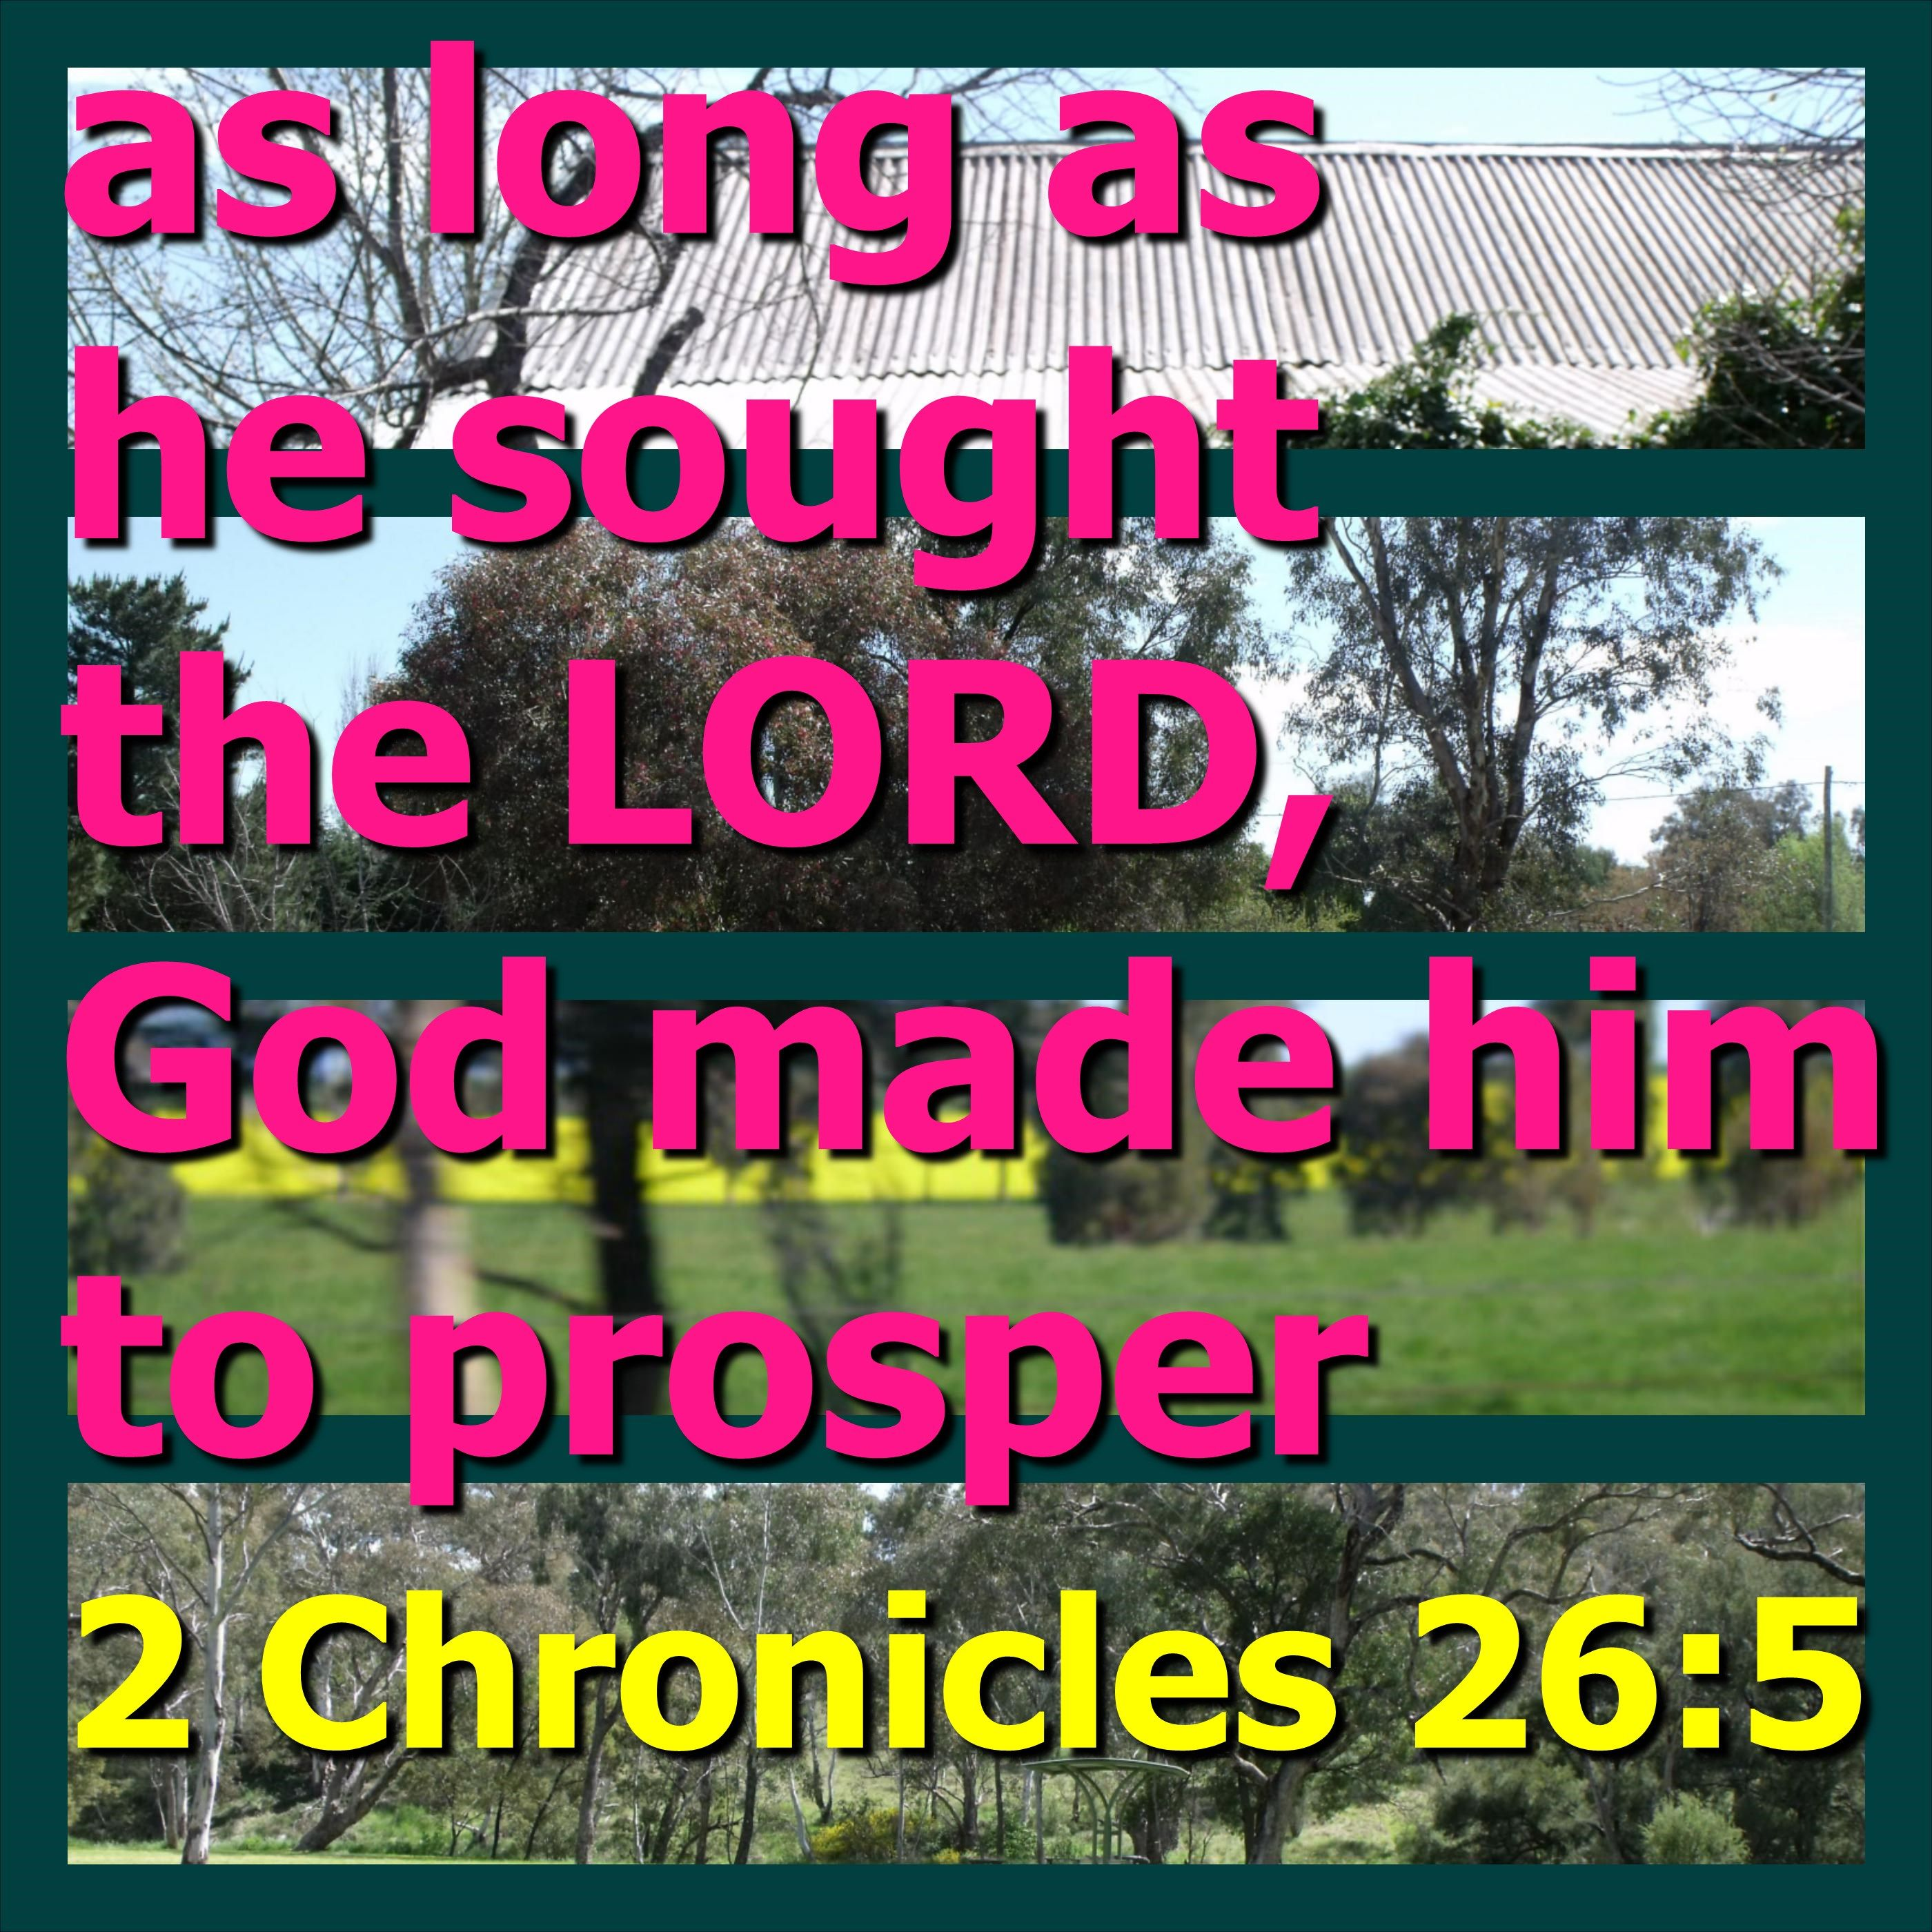 2 Chronicles 26:5 And he sought God in the days of Zechariah, who